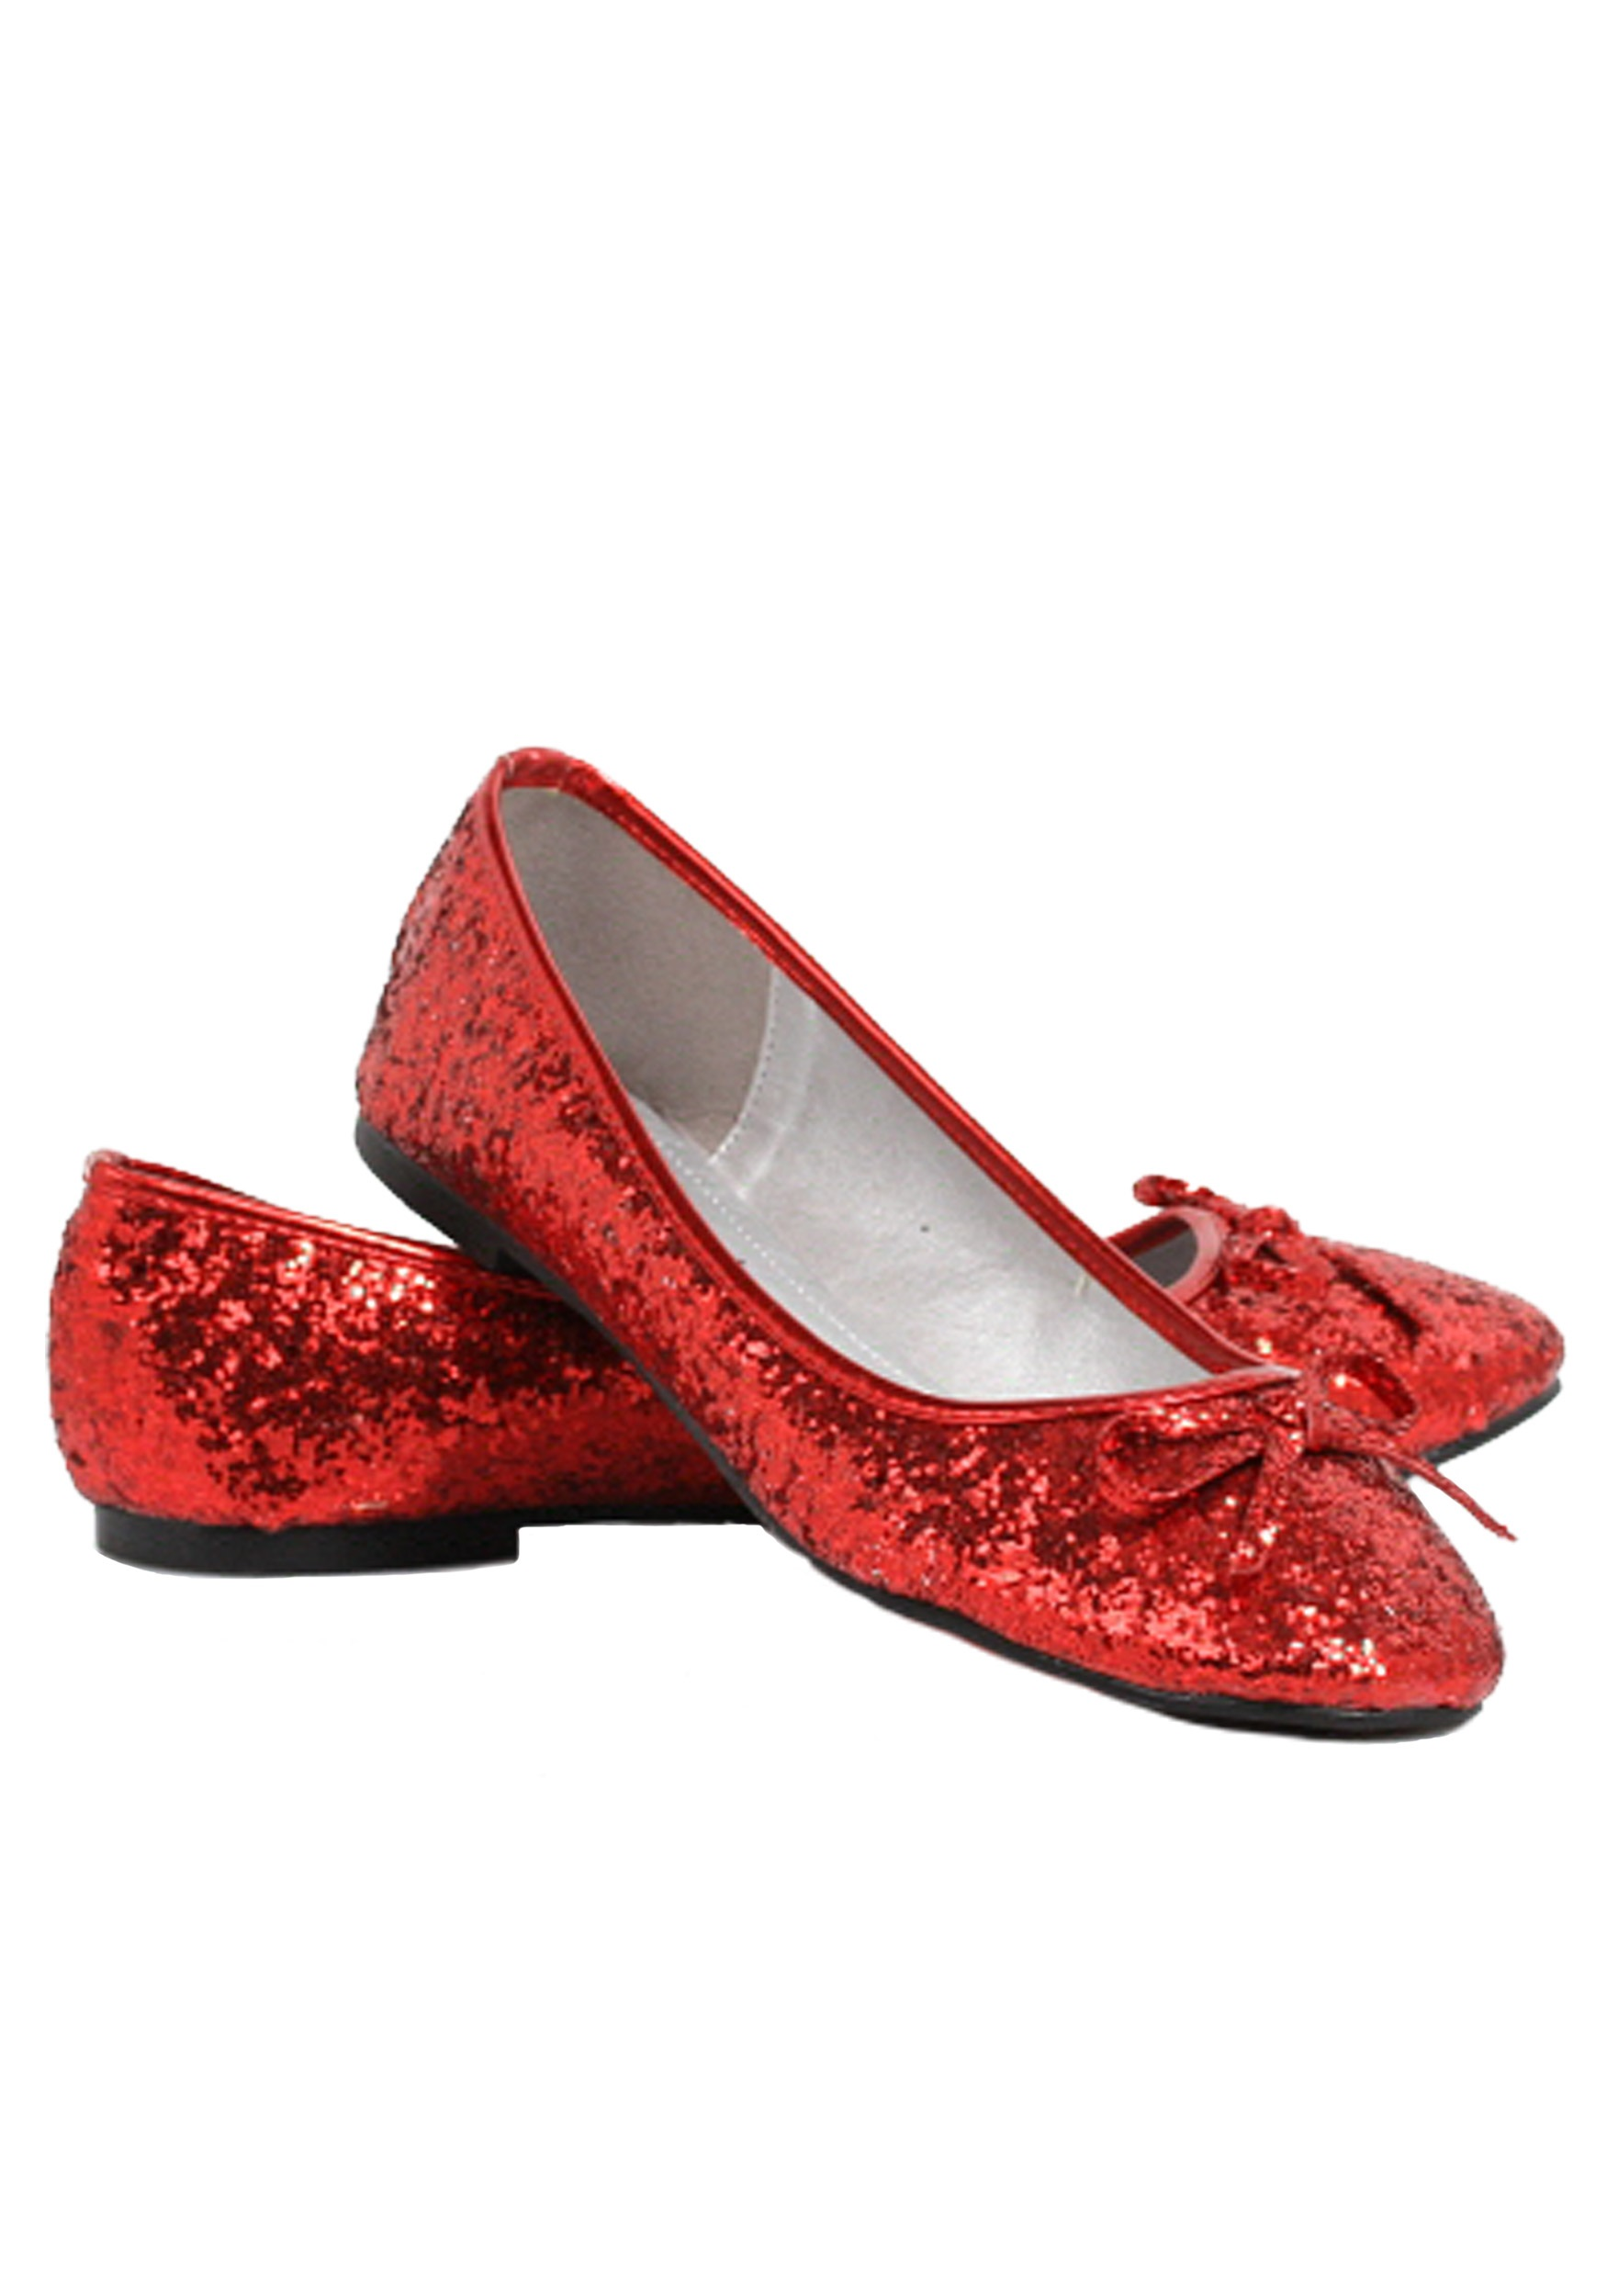 Dorothy Red Glitter Shoes Uk